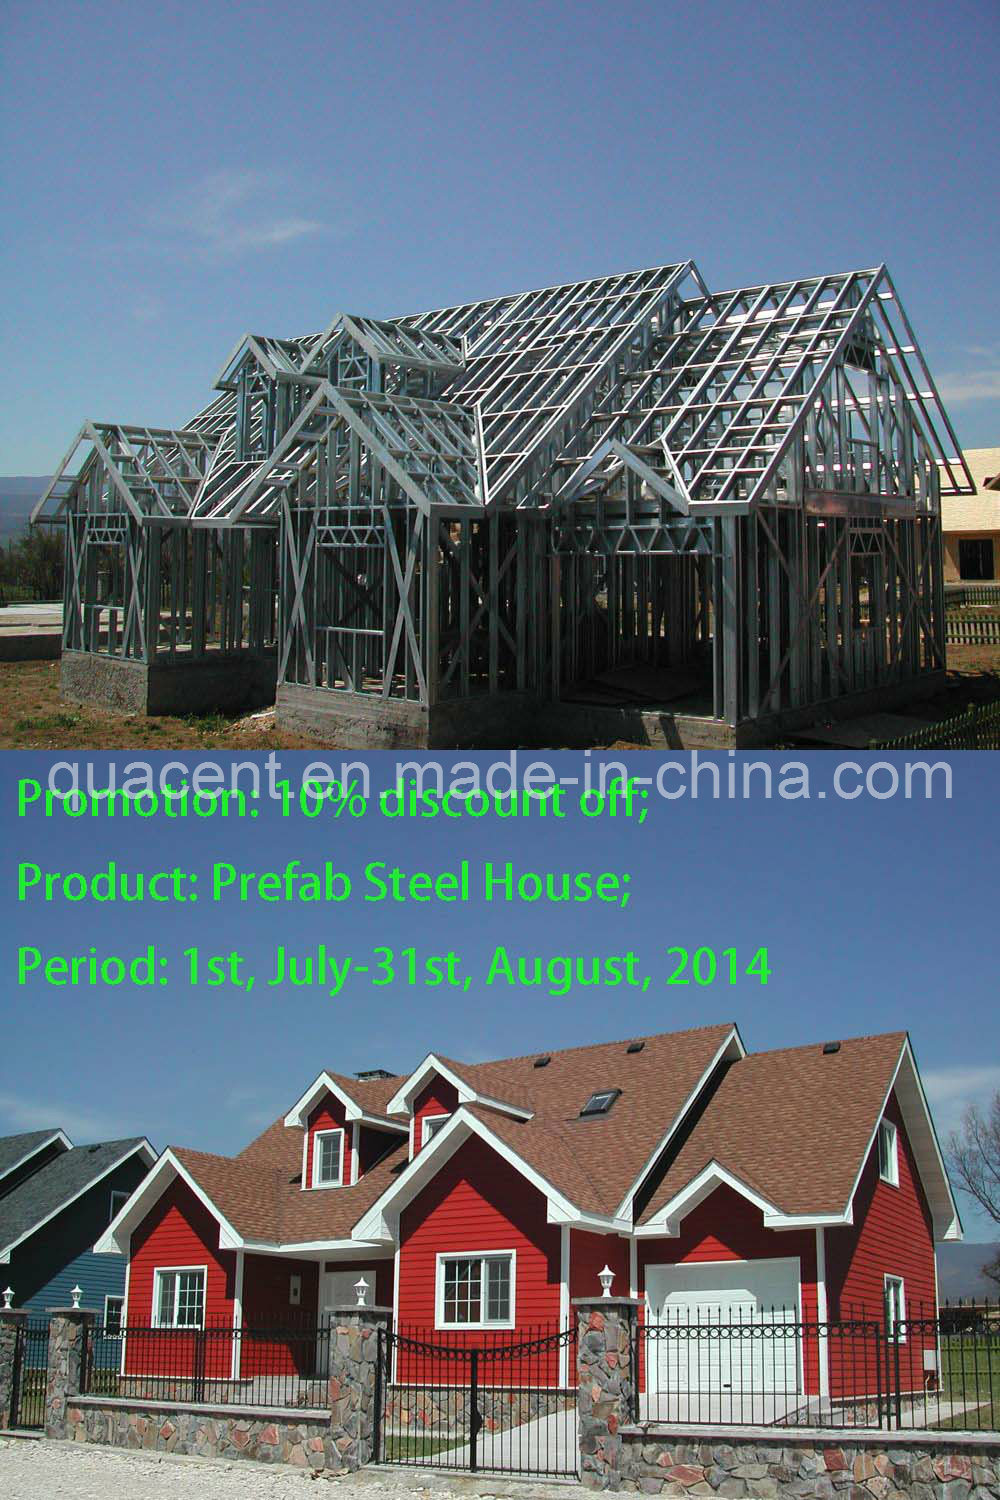 China prefab steel house photos pictures made in for Prefab steel house